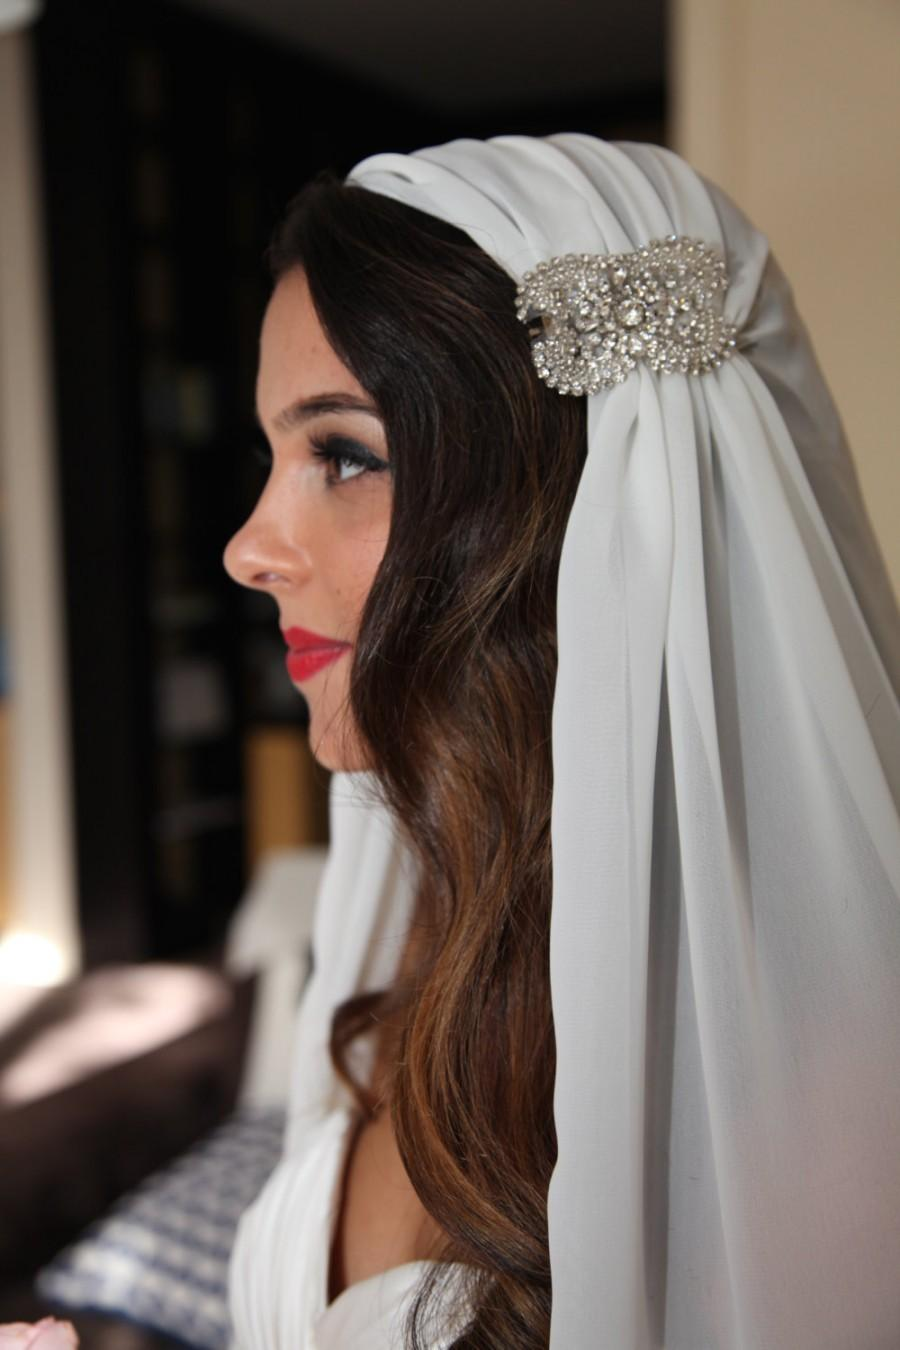 Hochzeit - Juliet Cap Veil, Chiffon Veil, Wedding Veil, Crystal Applique, Juliet Veil, Cap Veil, Vintage Art Deco Veil - SECOND